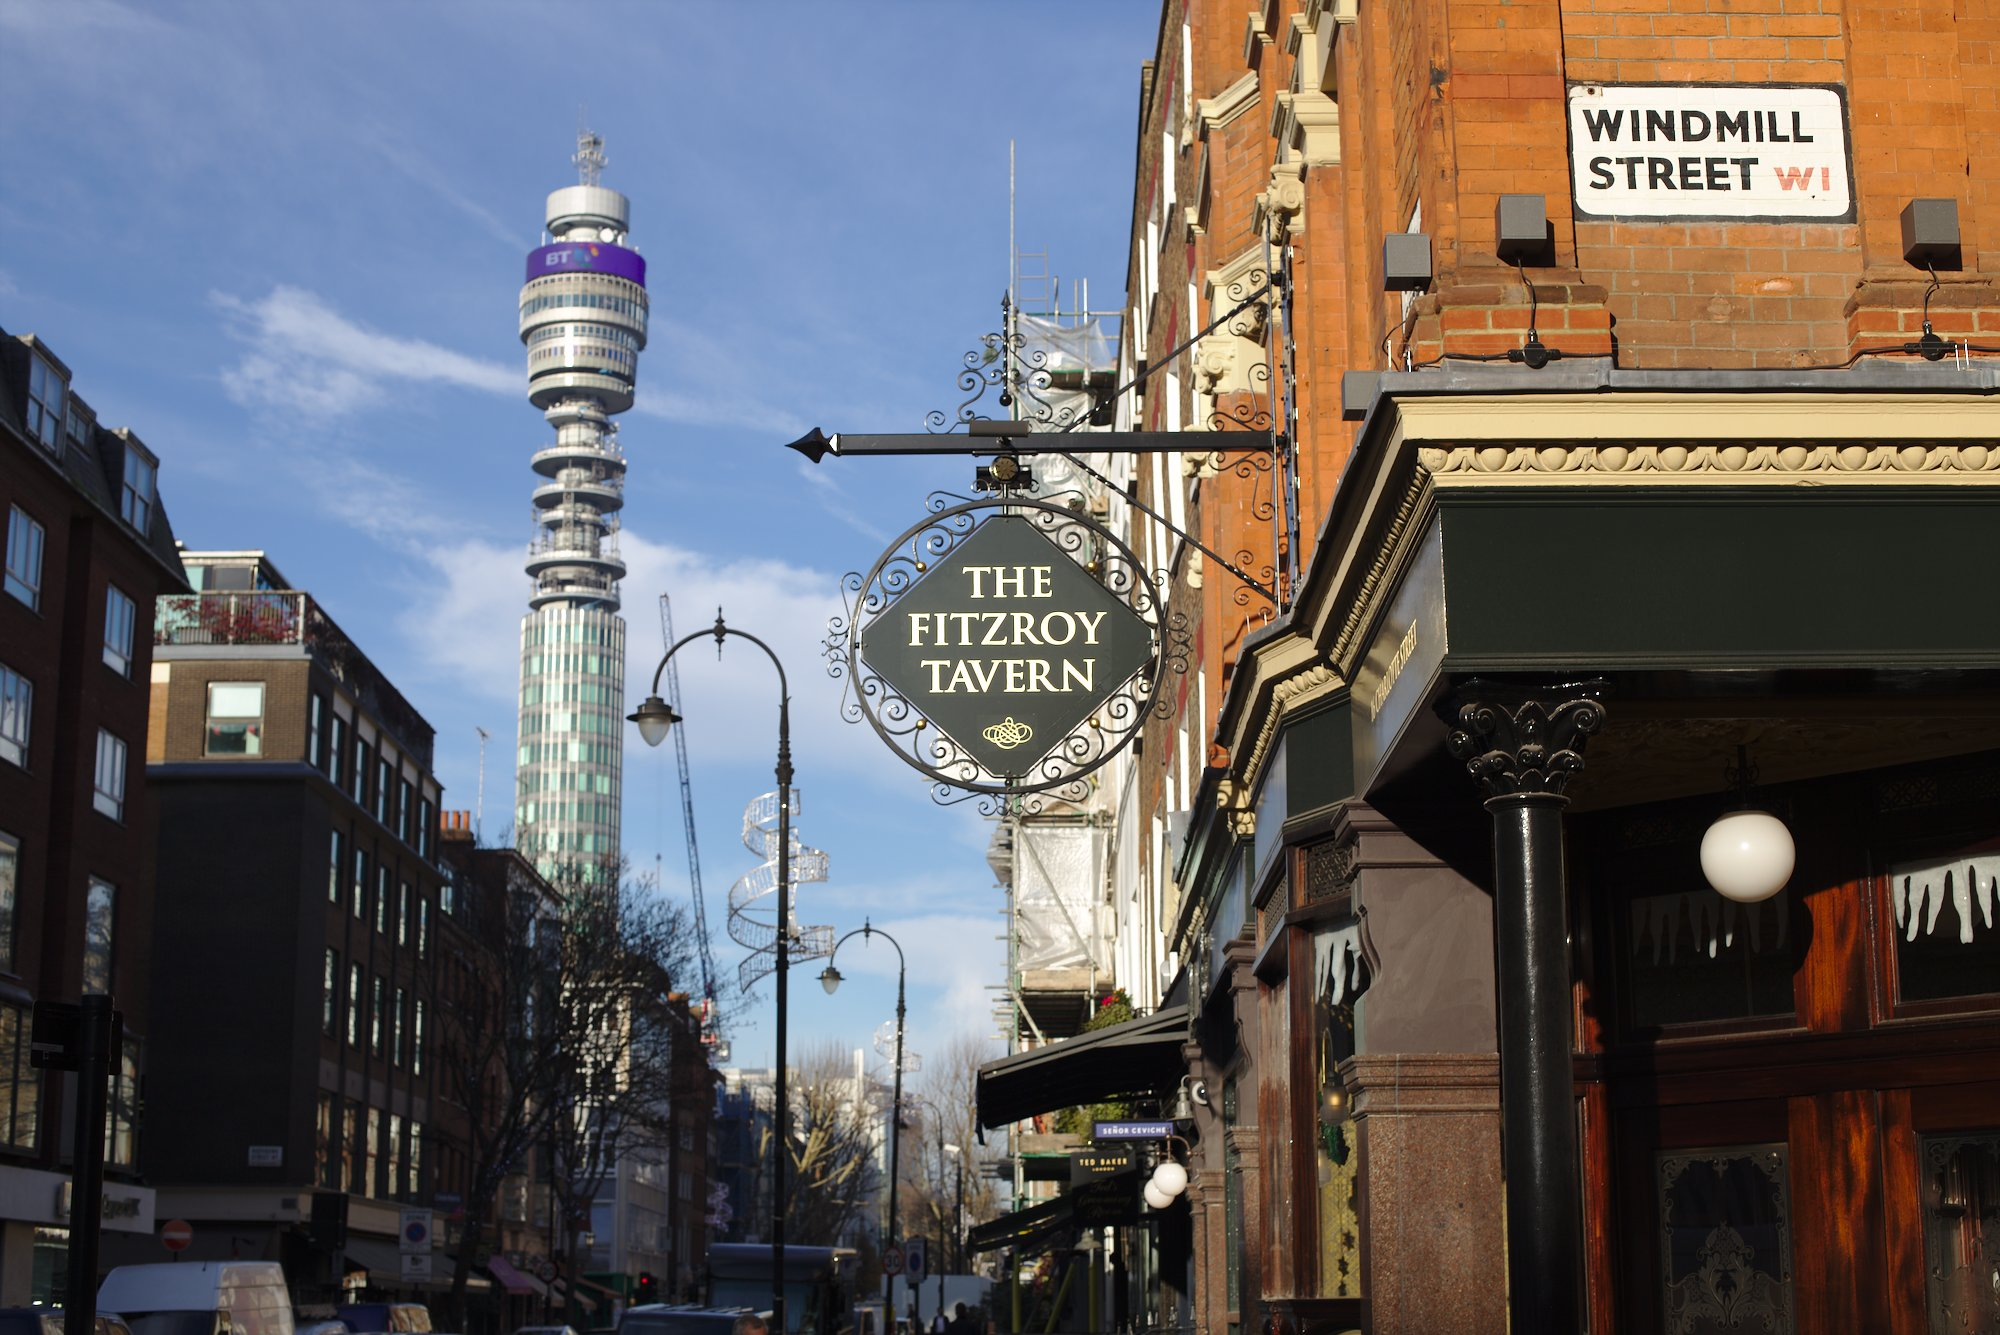 Fitzroy and BT Tower